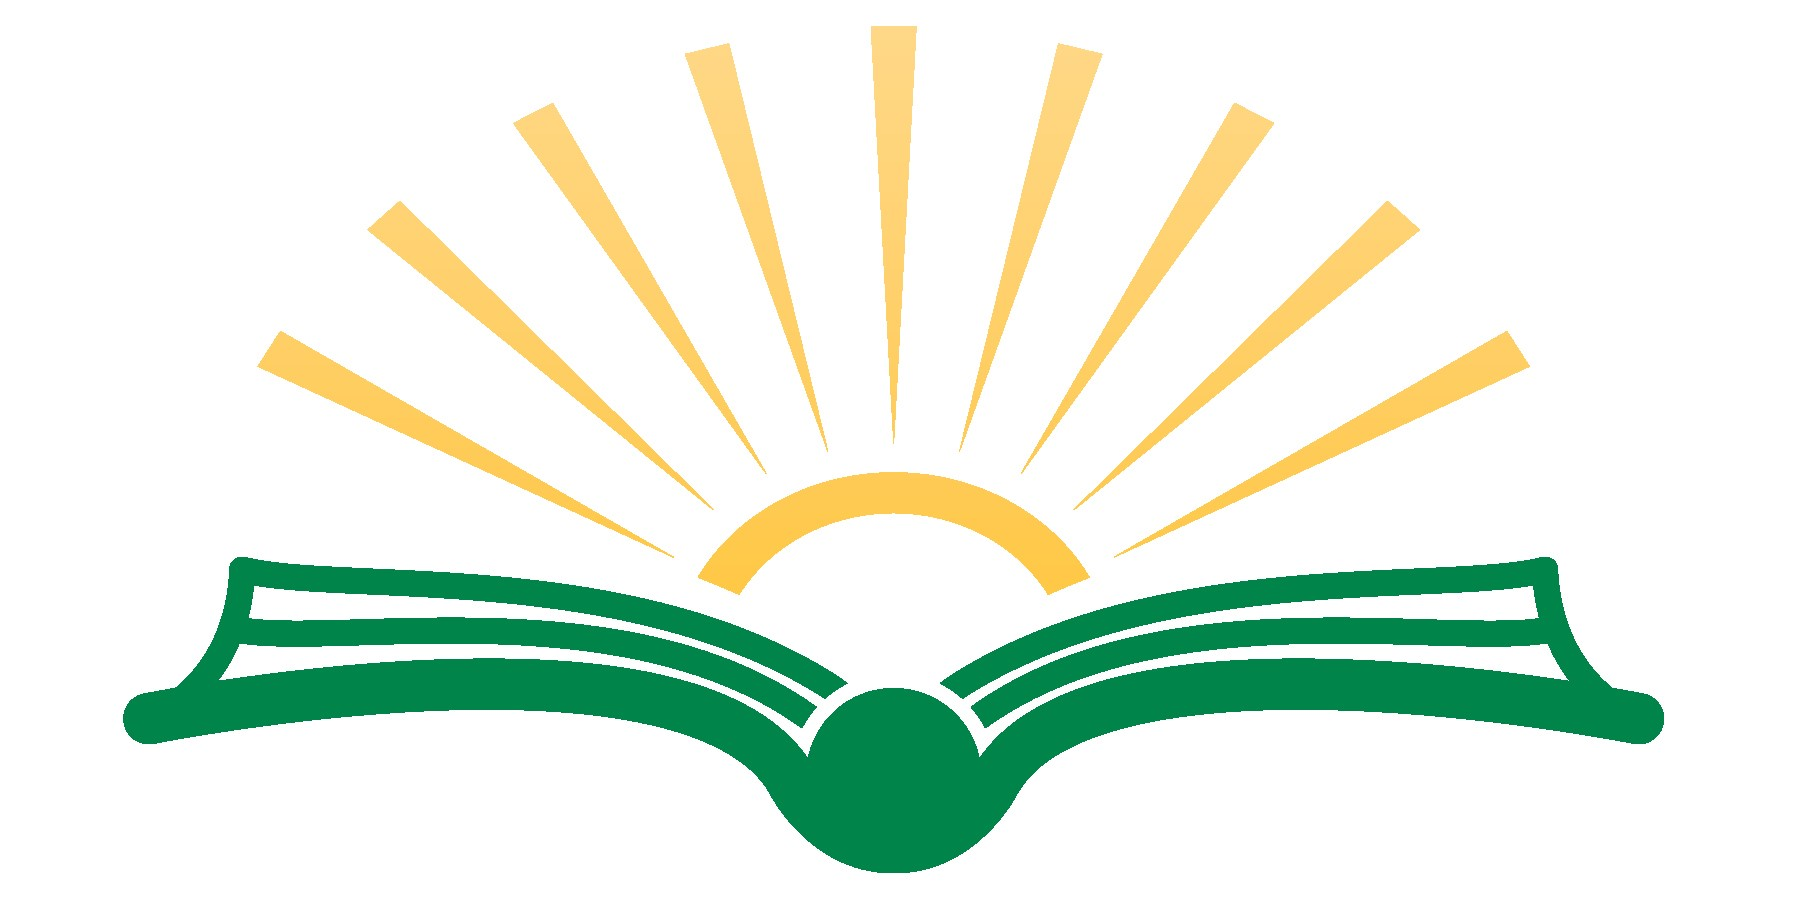 Clip art of book with a sun over the pages